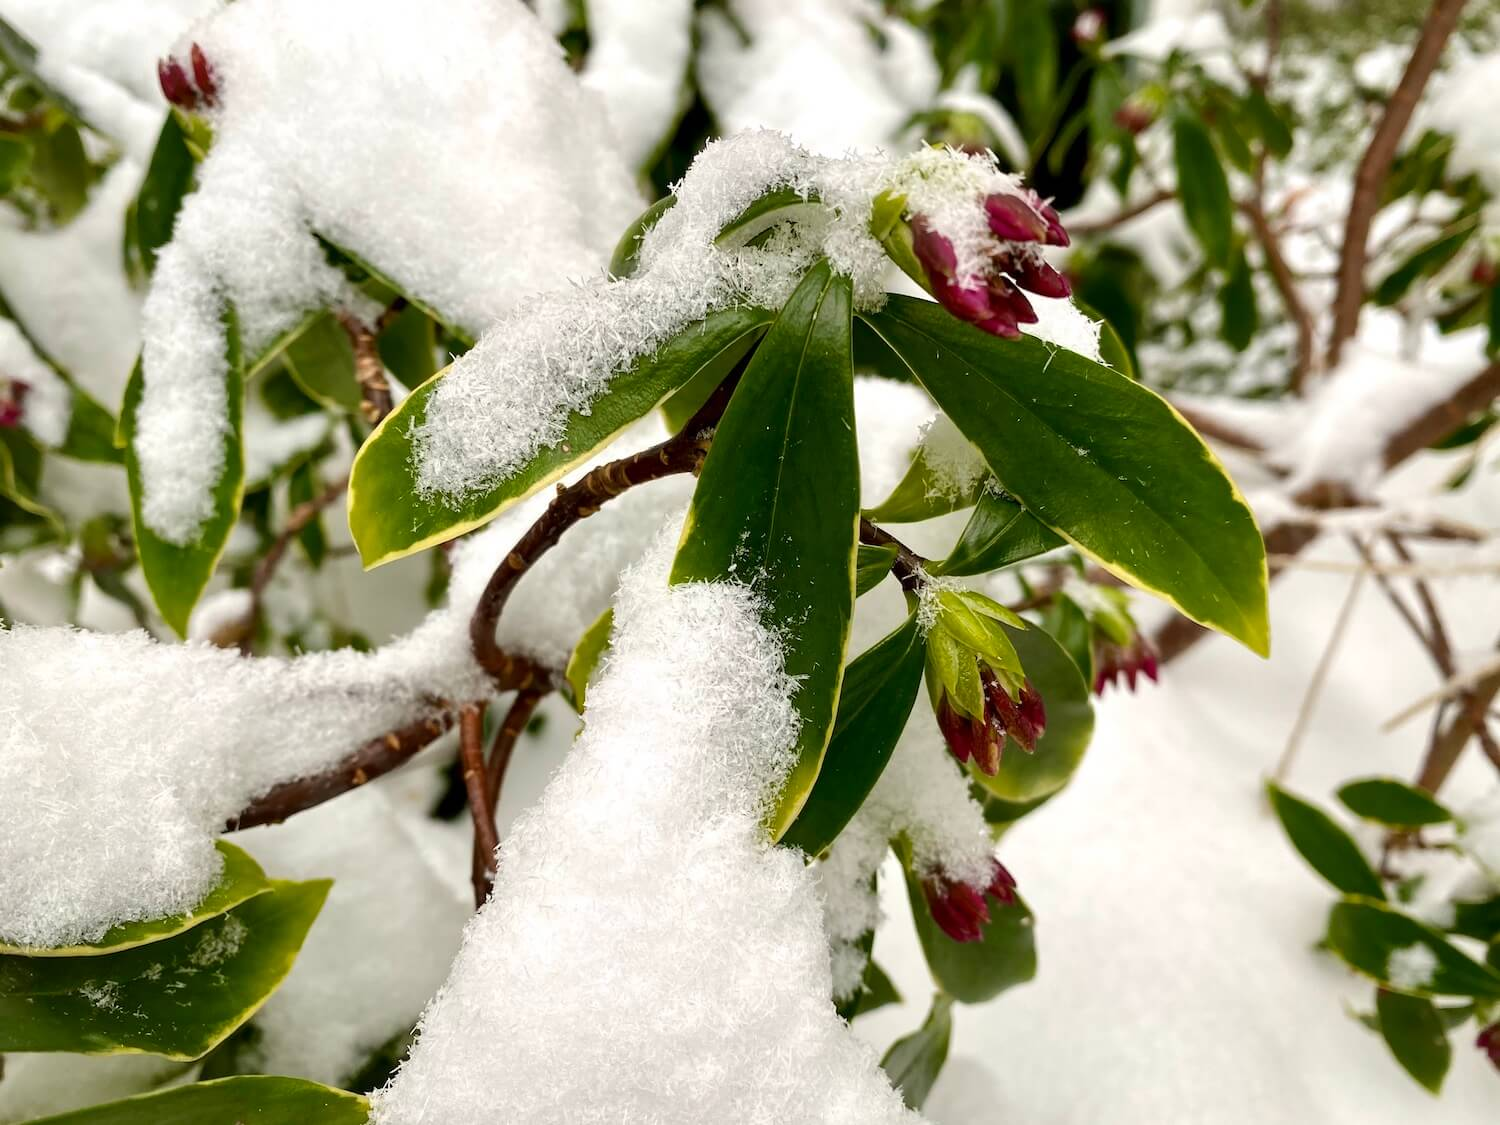 Snow crystals pile up on a budding Daphne bloom, making it's way to push through the snow. The green leaves are light yellow on the ends.